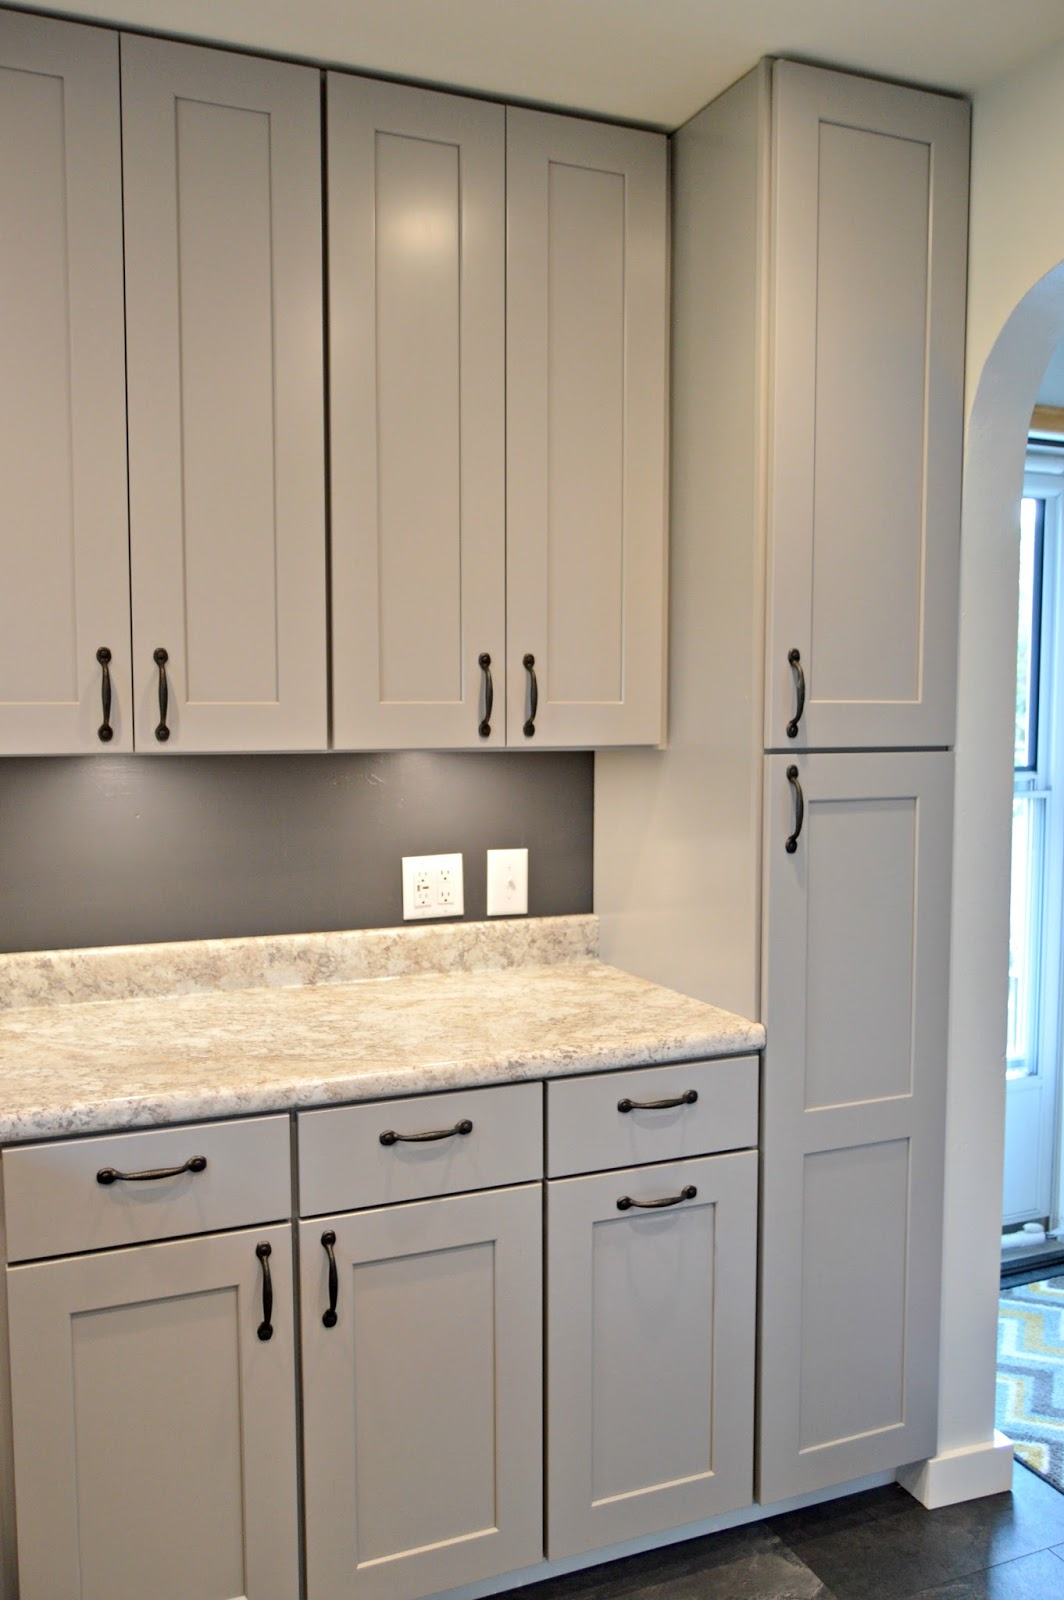 Kruse 39 s workshop kitchen remodel for Grey kitchen wall units